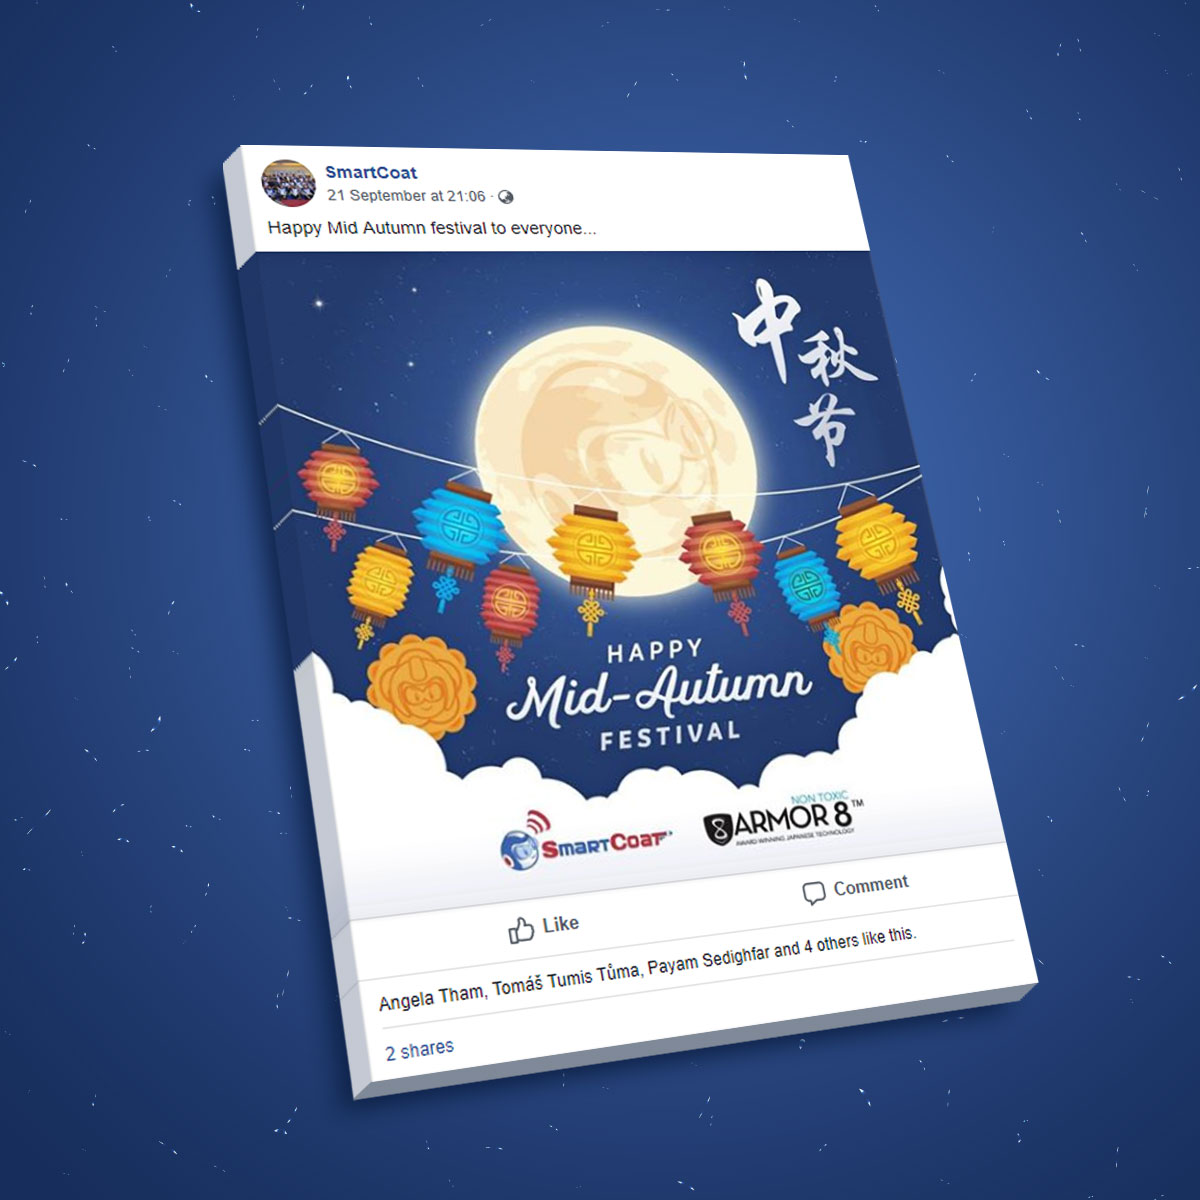 SmartCoat and Armor8 Happy Mid-Autumn Festival 2018 Facebook Post Design 03